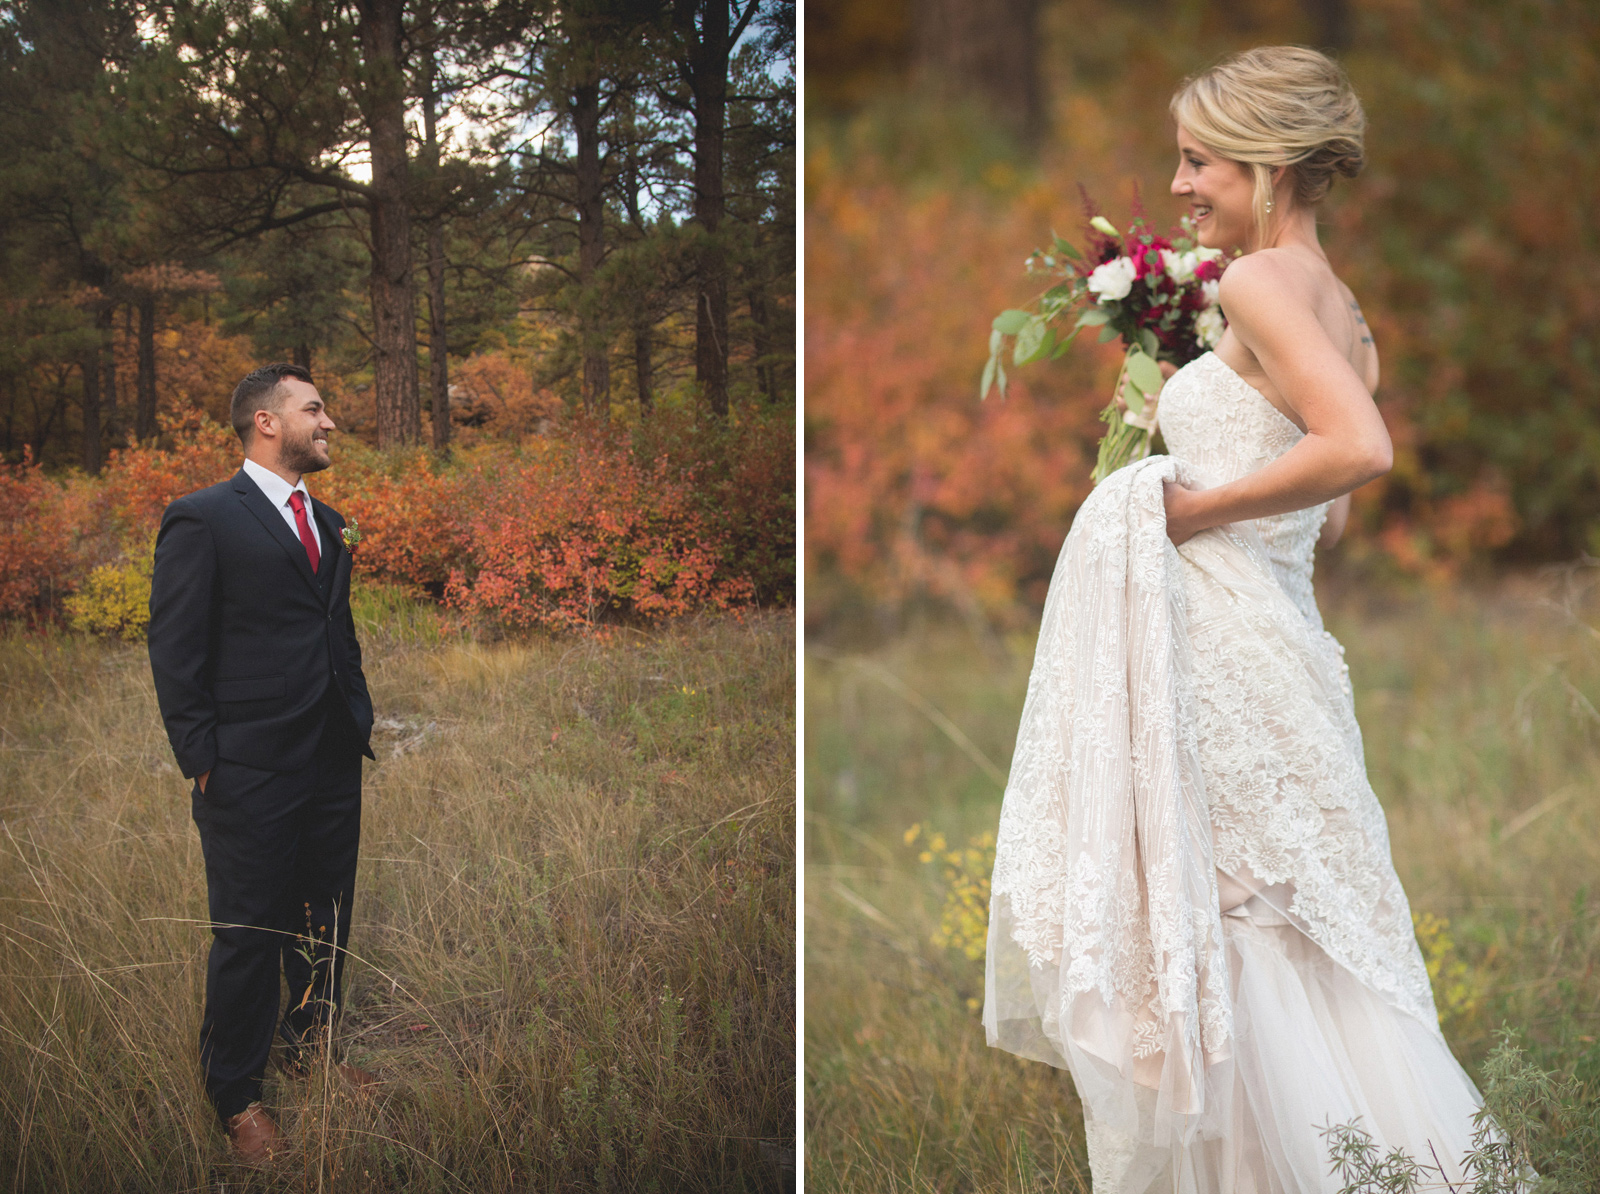 148-beautiful-bride-and-groom-photojournalist-portraits-at-elopement-wedding-in-durango-colorado-forest